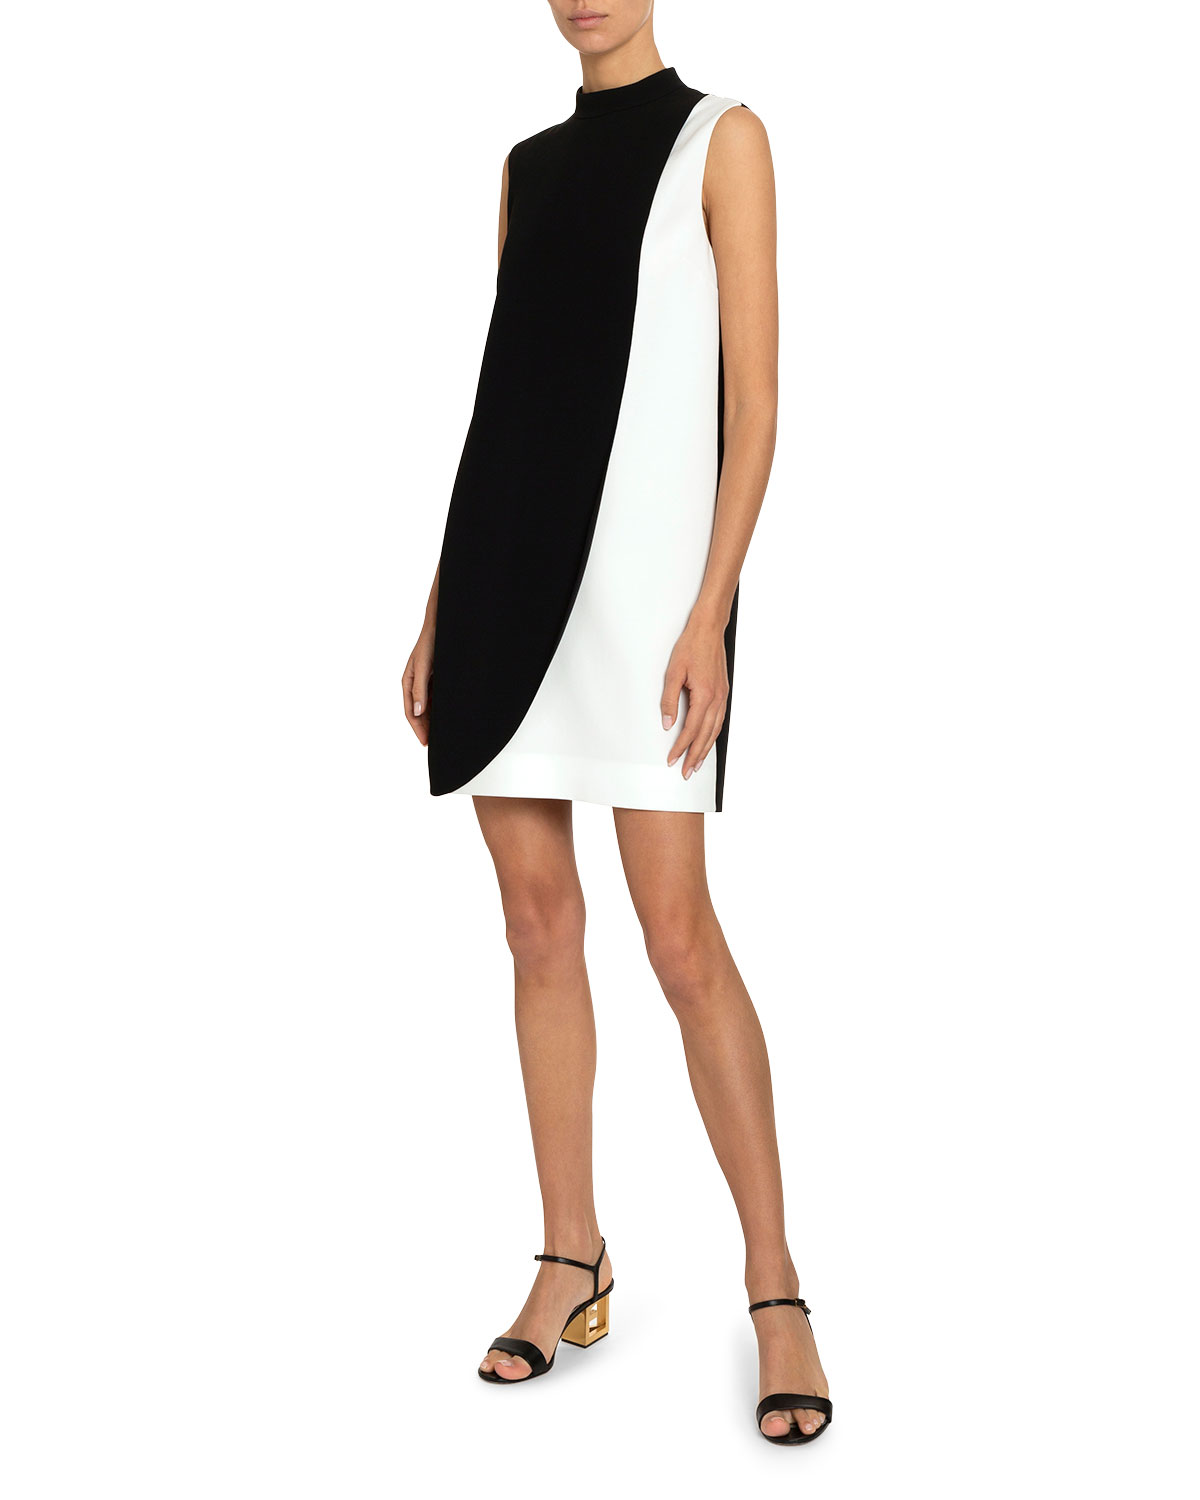 Givenchy Dresses TWO-TONE SWOOP MINI DRESS